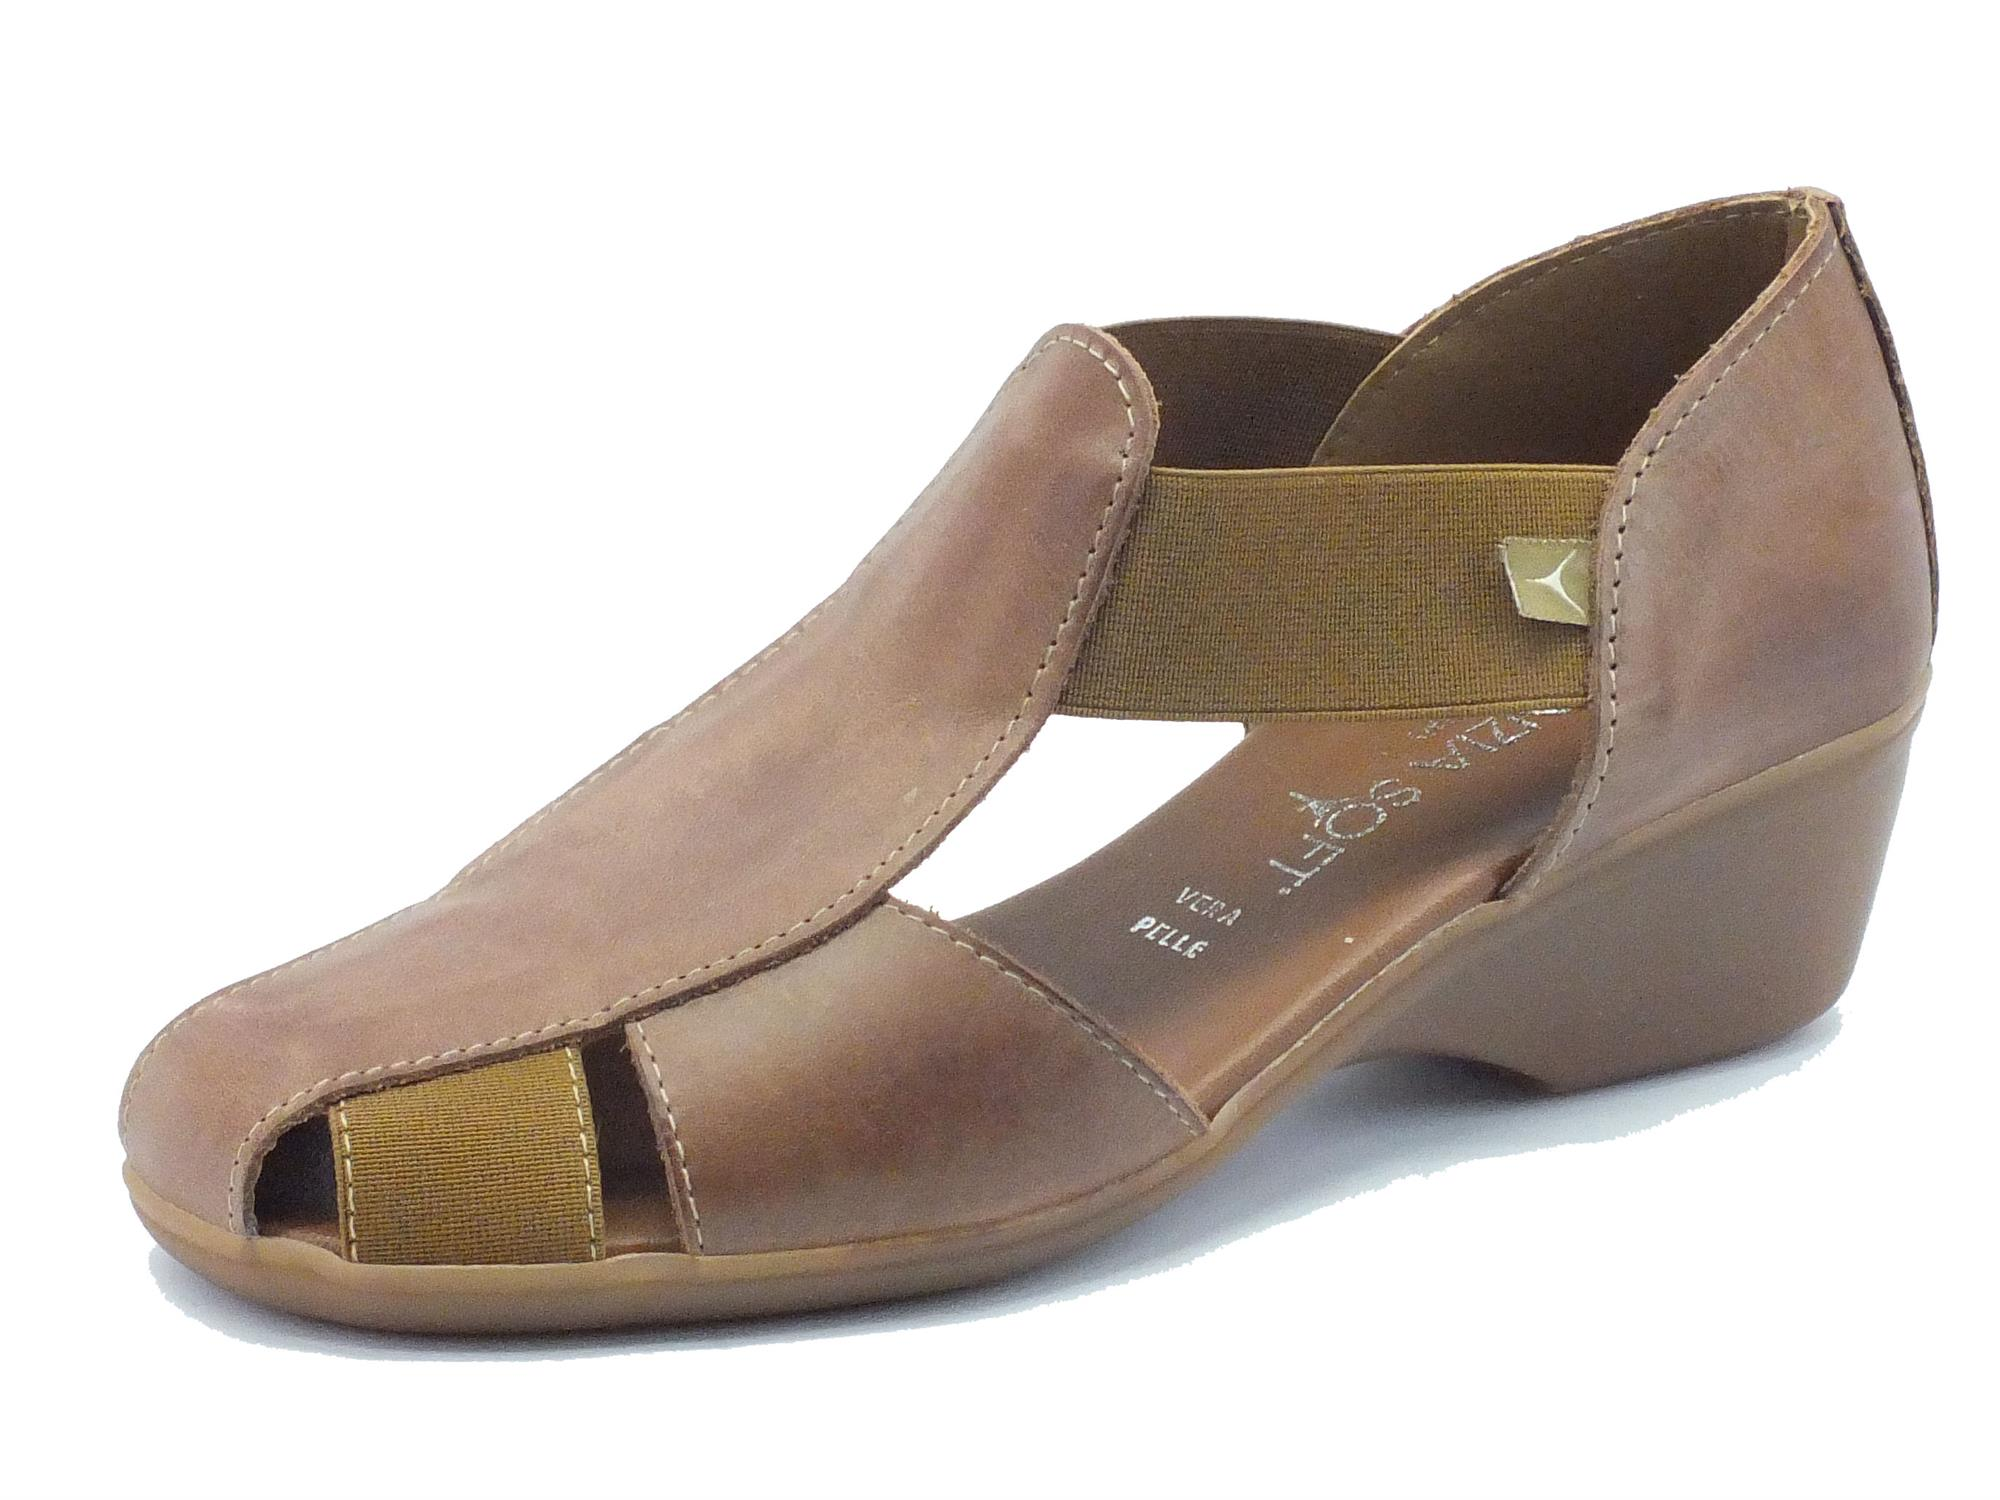 Mocassini per donna Cinzia Soft in pelle marrone zeppa 4cm